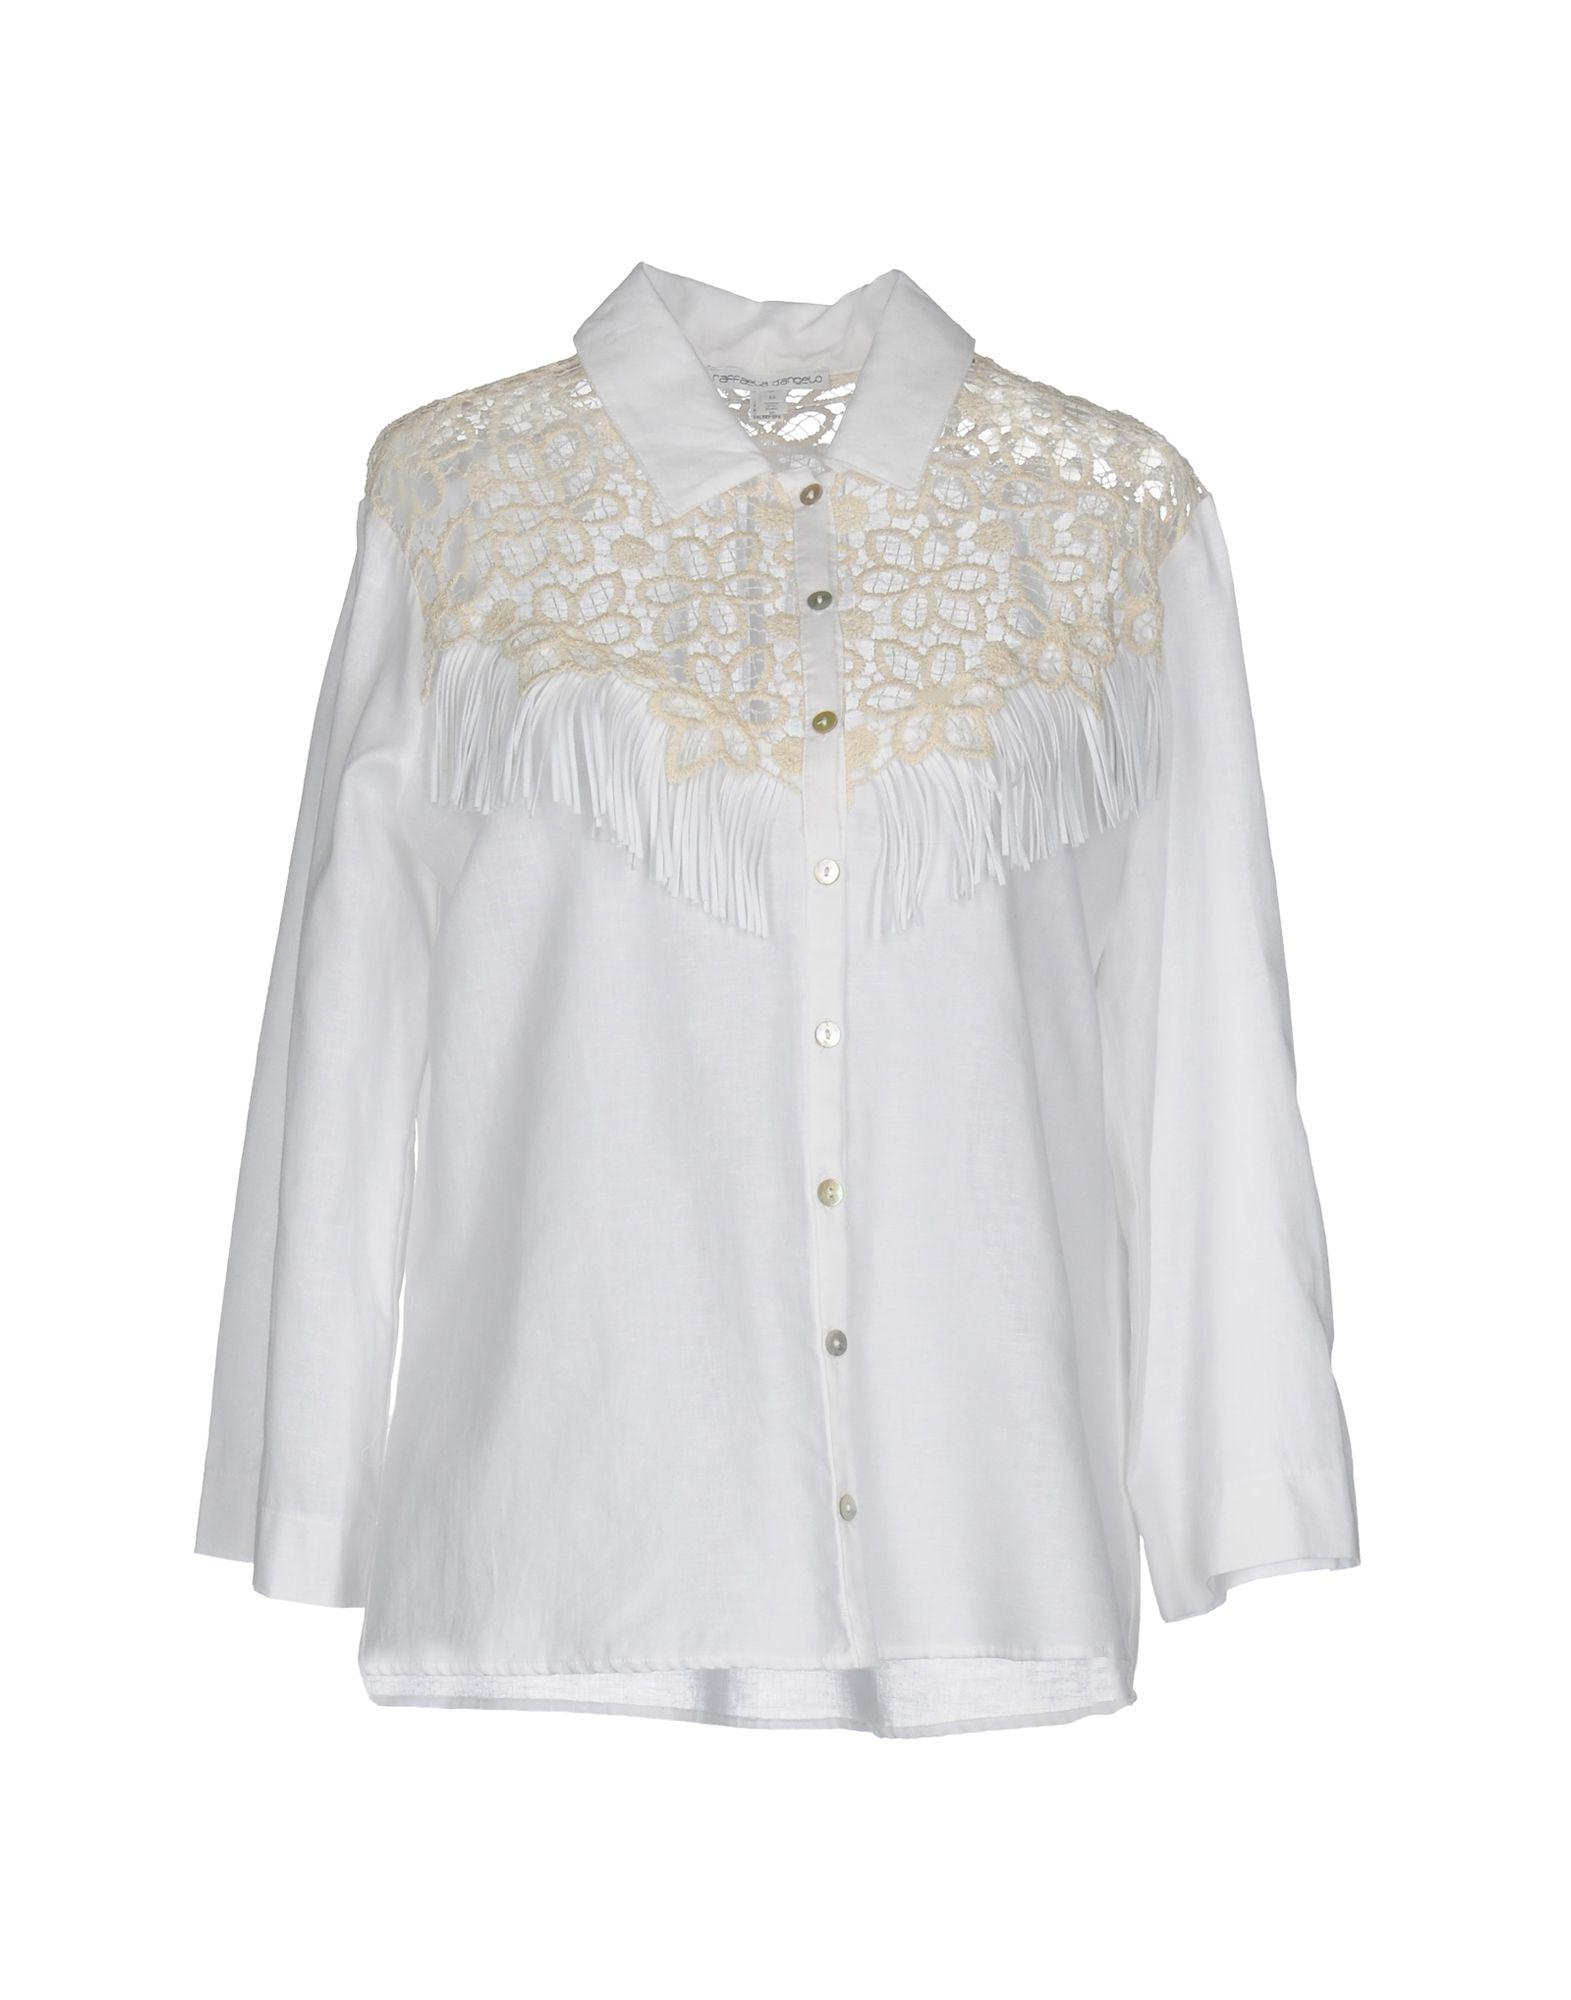 Buy Cheap Discount SHIRTS - Shirts Raffaela D´angelo Free Shipping New Styles Cheap Sale Genuine Limited Edition Cheap Price TNg4IqVde